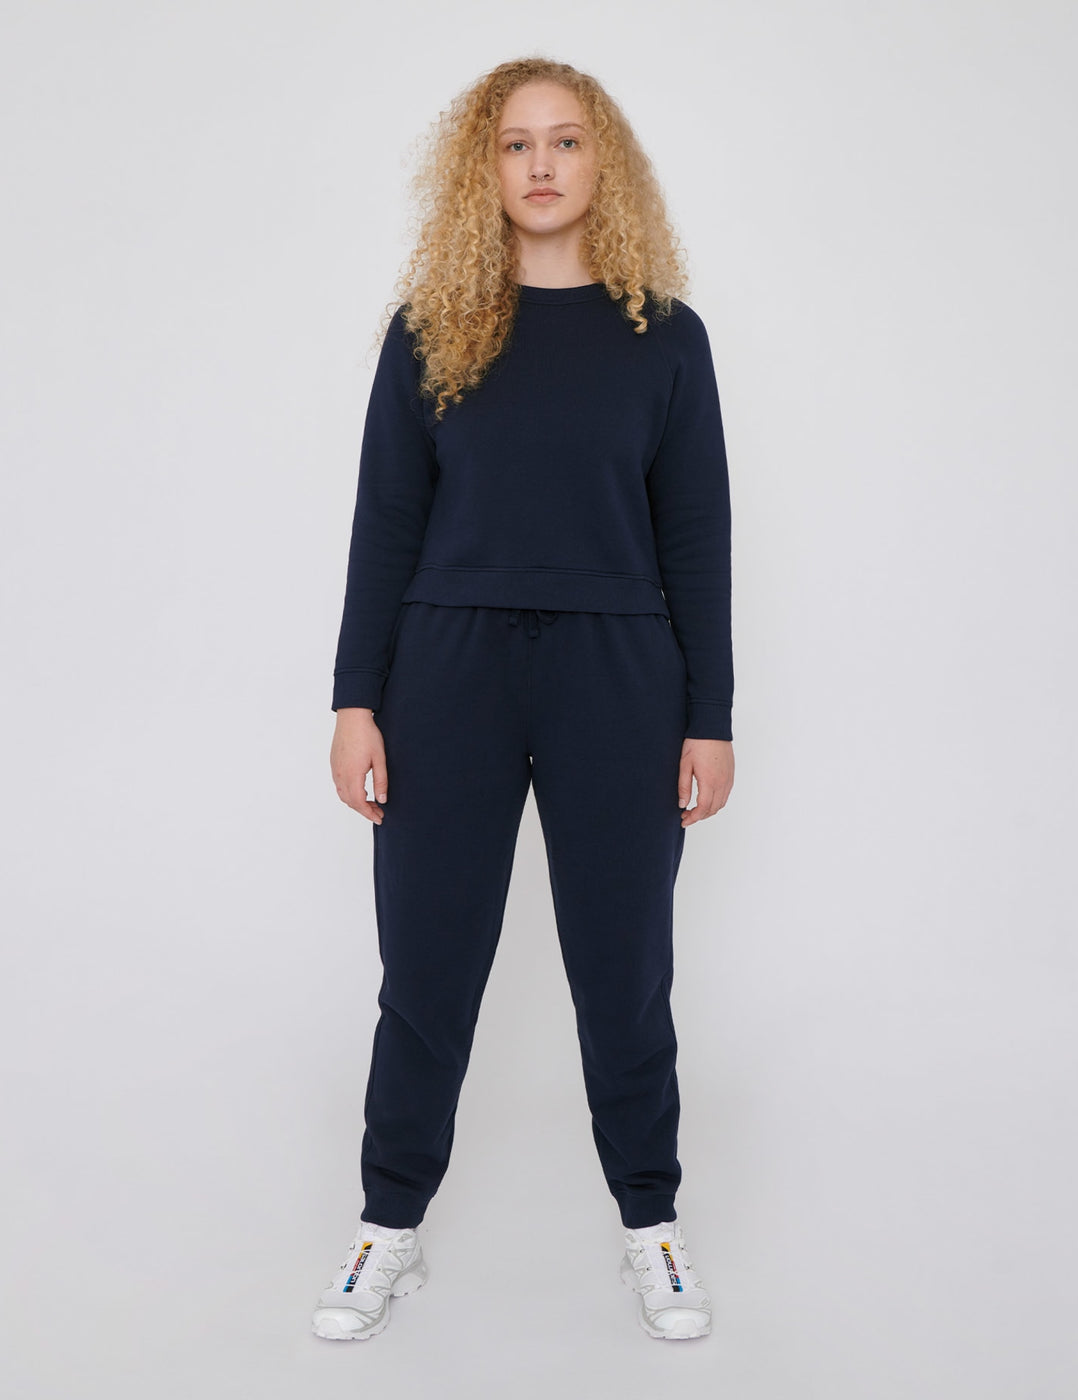 Organic Cotton Mid-Weight Sweatpants